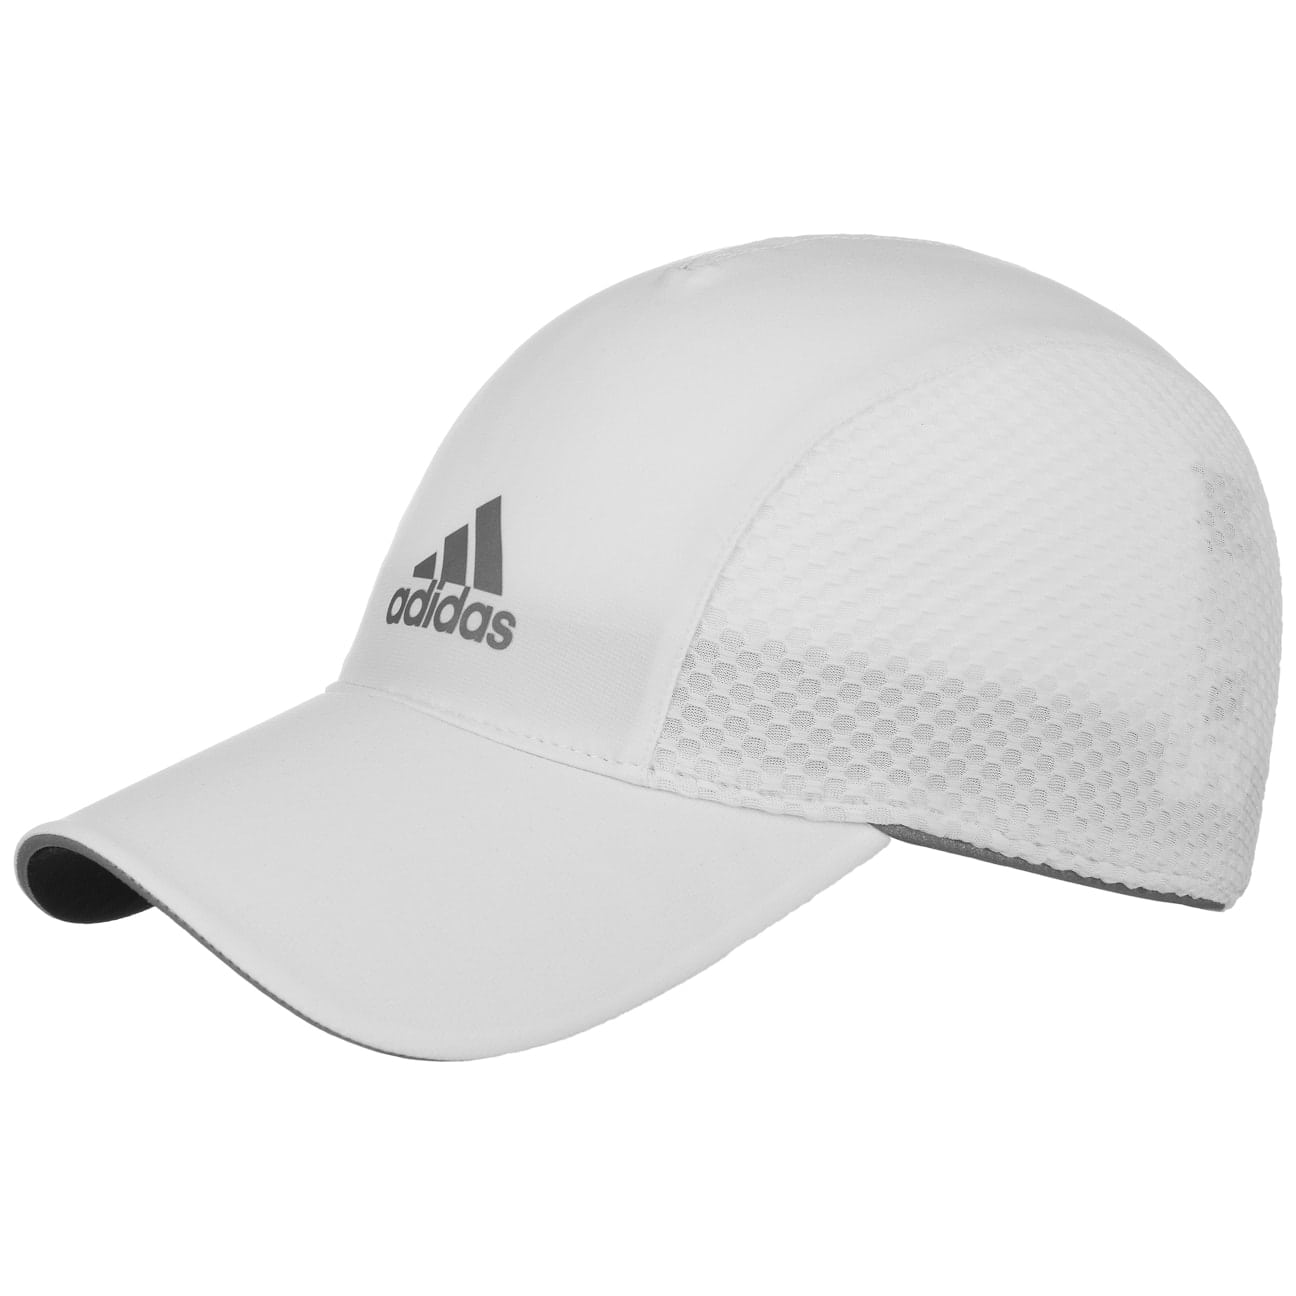 8543c9214ec ... Run Climacool Cap by adidas - wit 4